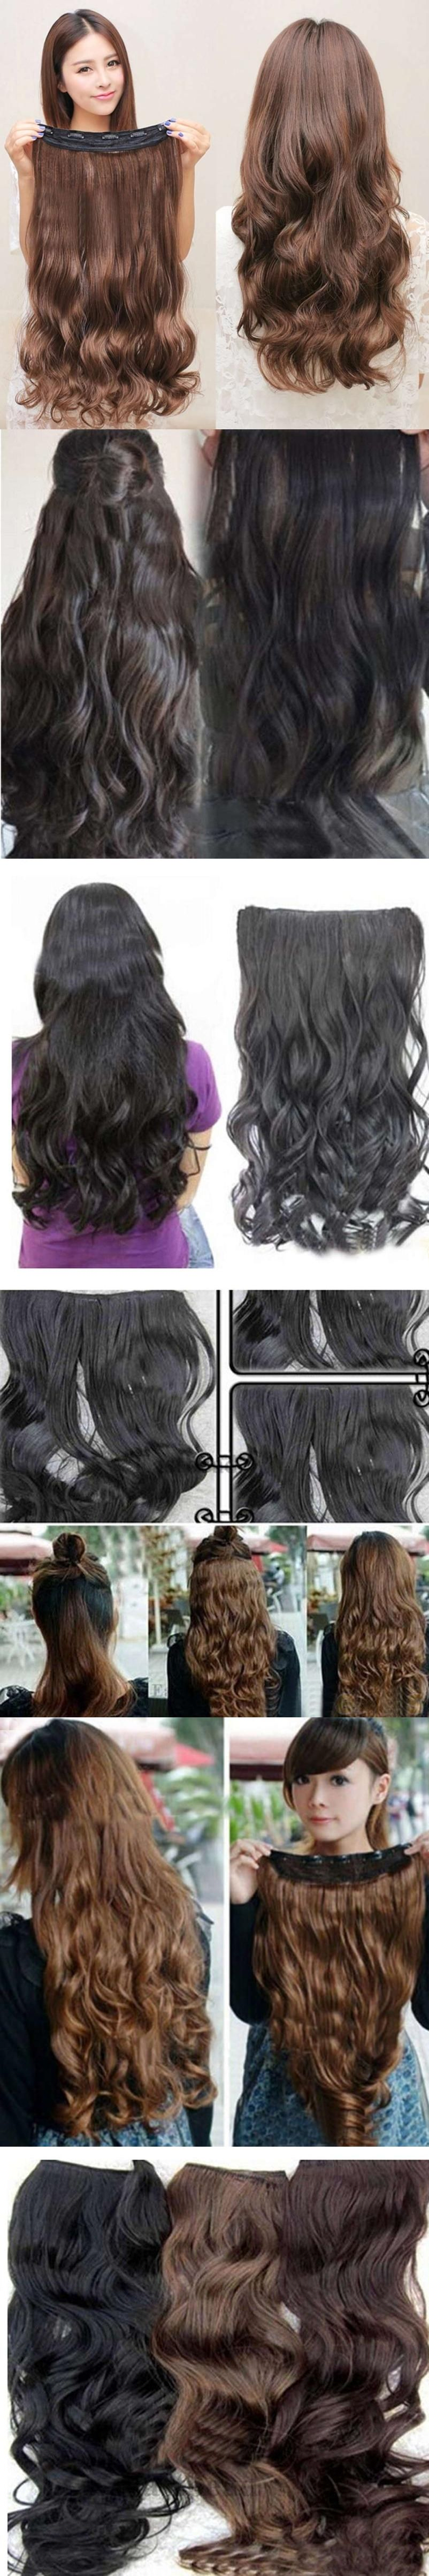 Head Clip Curly Wavy Women Synthetic Hair Extension Braider Dropship